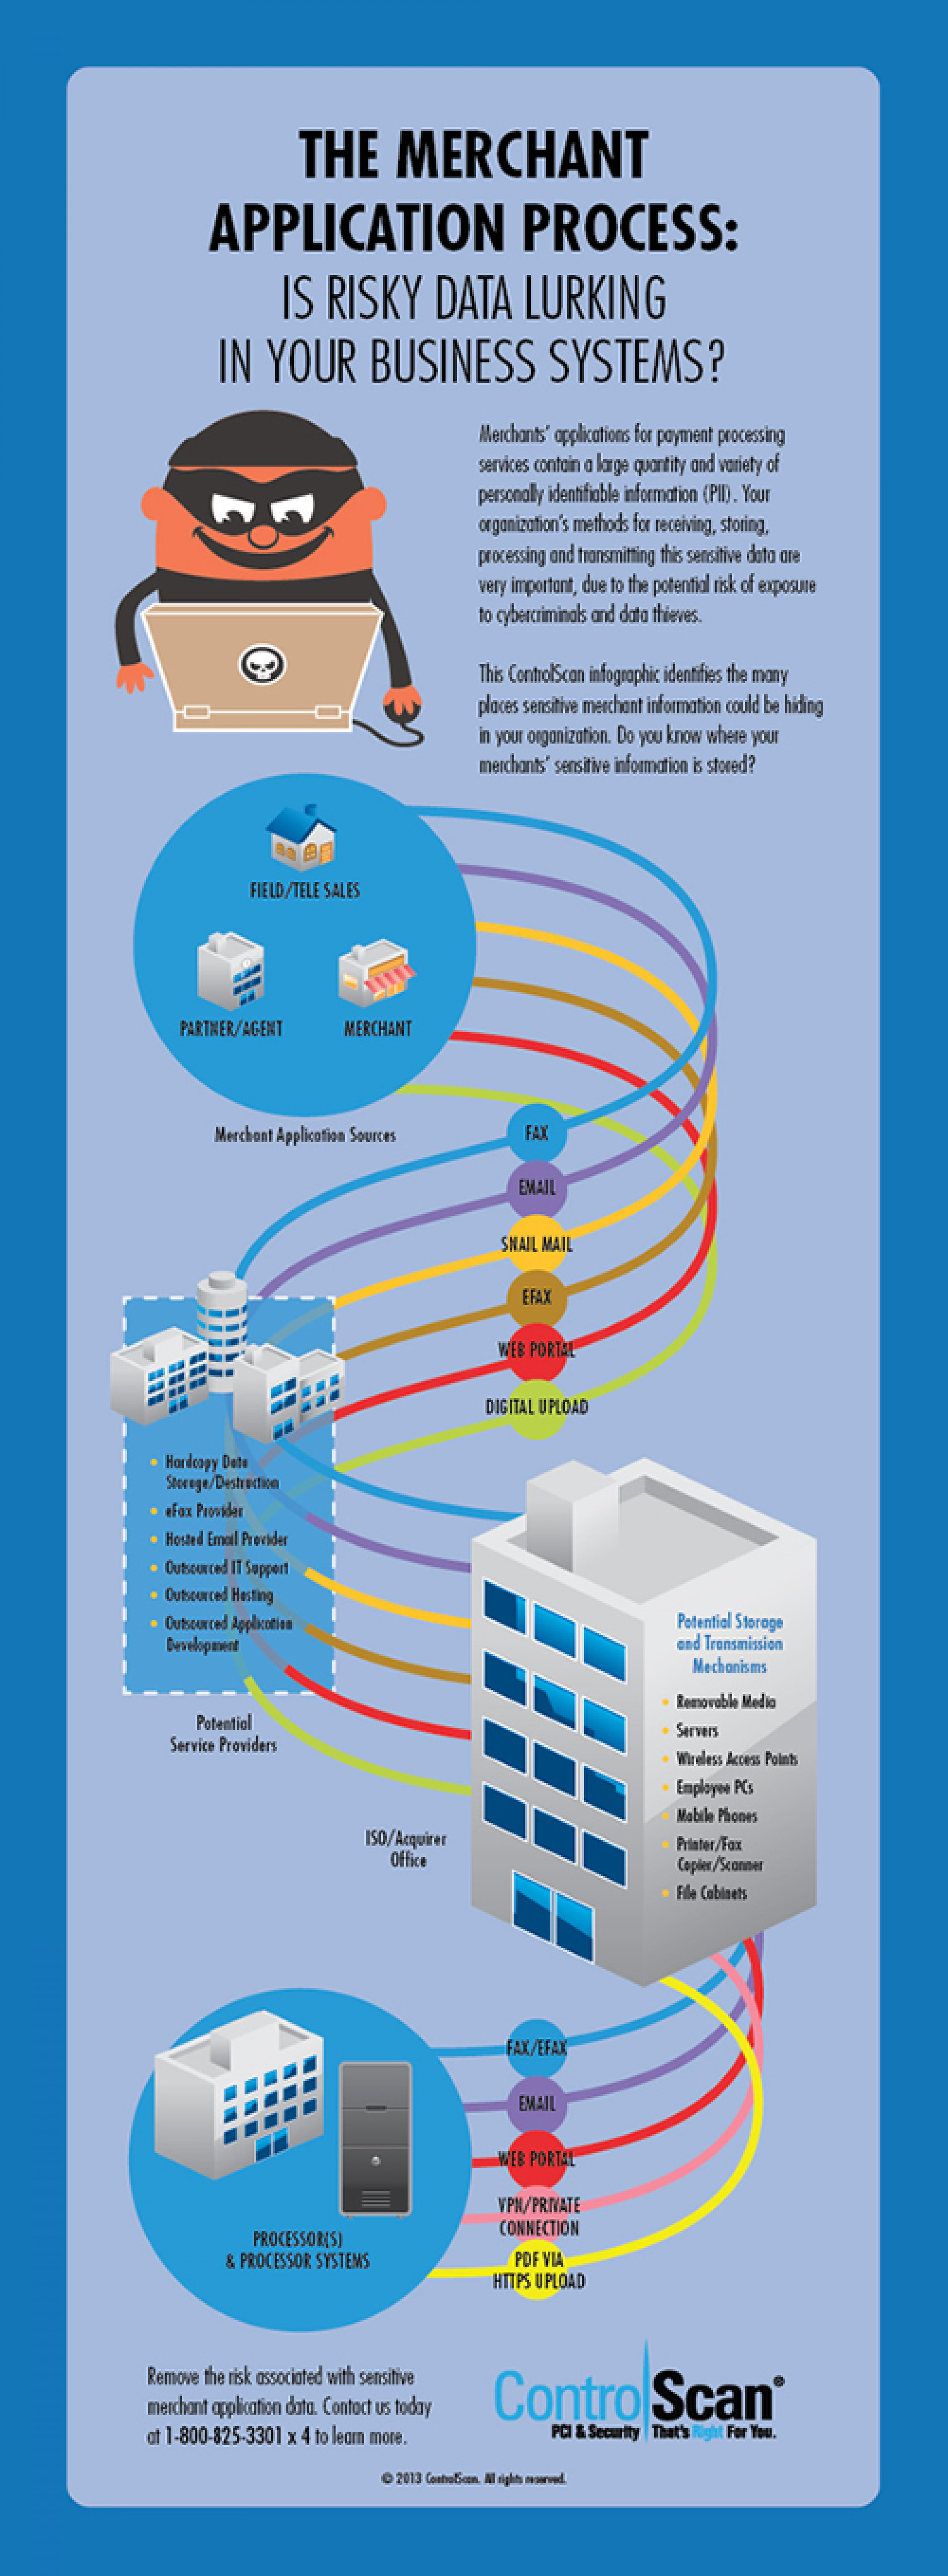 Is Risky Data Lurking In Your Business Systems? Infographic